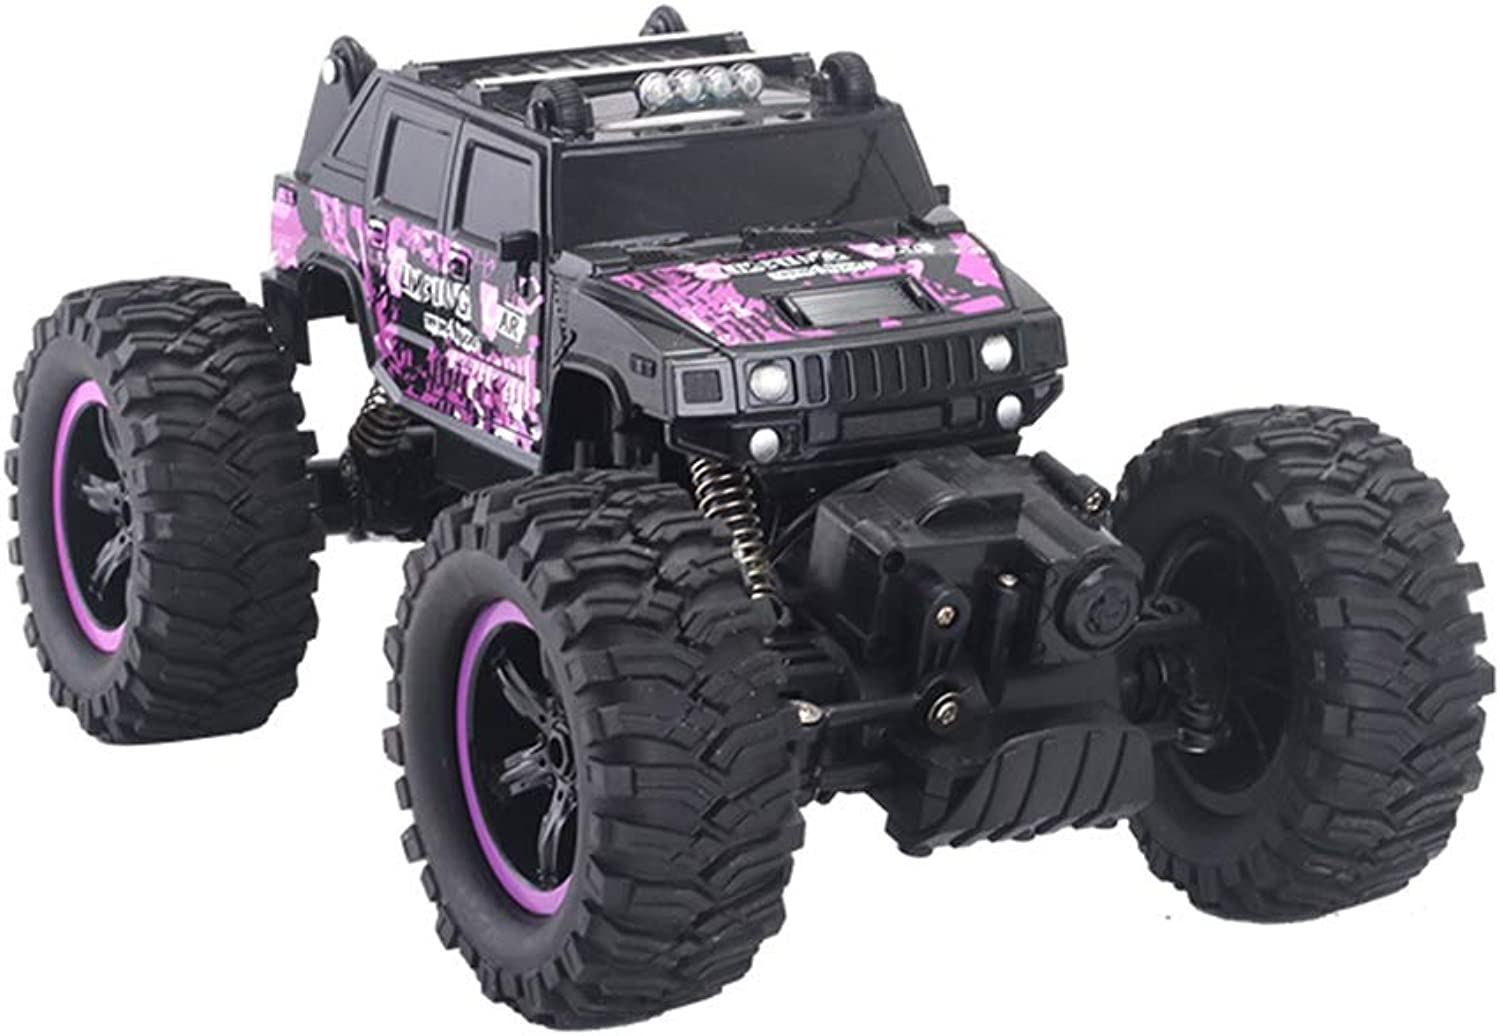 1 14 Remote Control Fourwheel Drive Offroad Model Car, Boy And Girl Gift Wireless Control Super Sports Car Electric Mini Lithium Battery Racing ( color   Black )